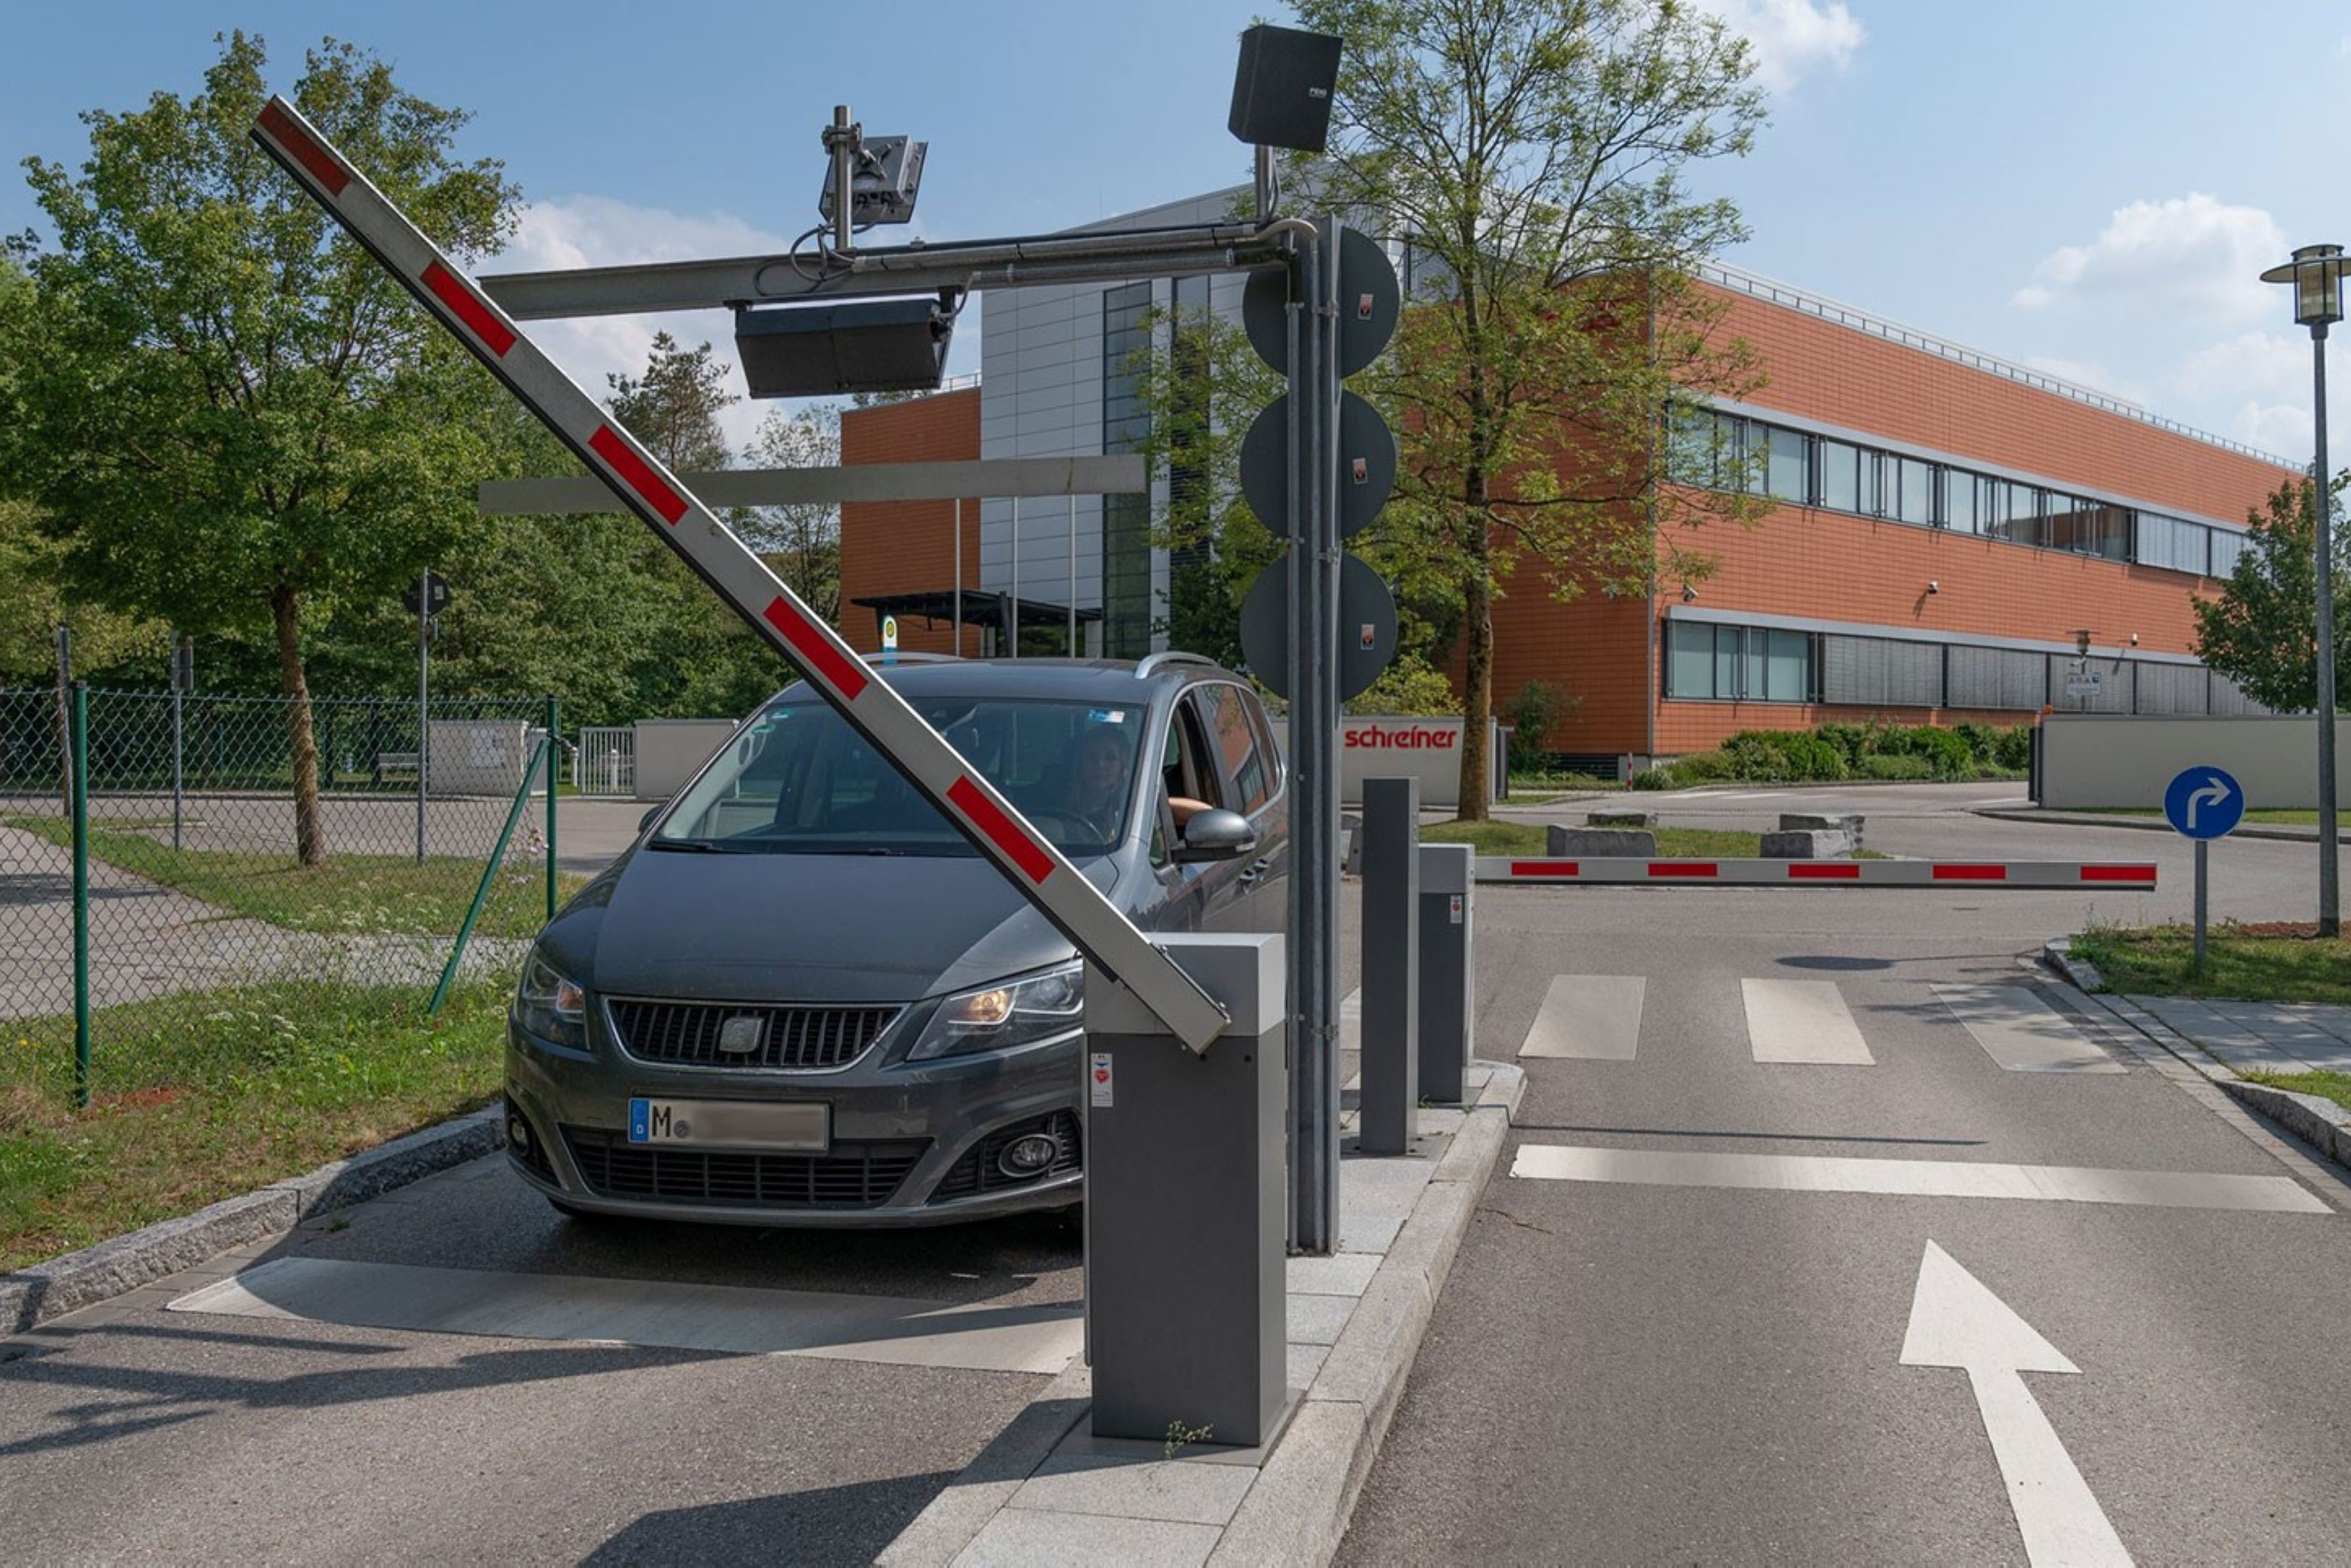 RFID solution from FEIG automates vehicle access control at Schreiner Group headquarters